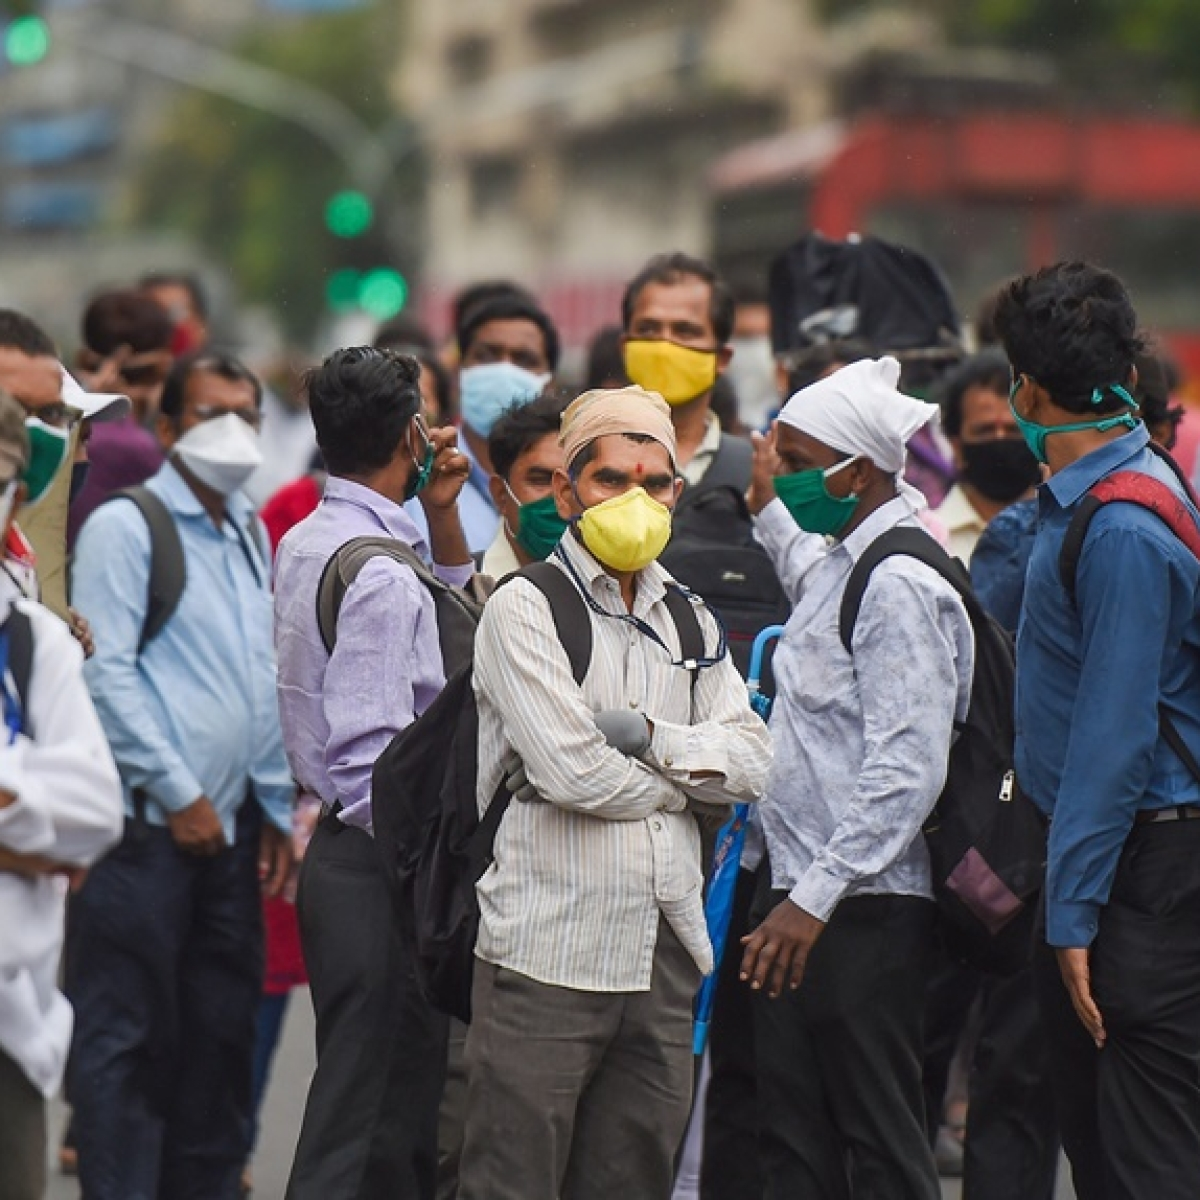 Should Mumbaikars step out during unlock 1.0? City doctors urge caution, ask people to stay home